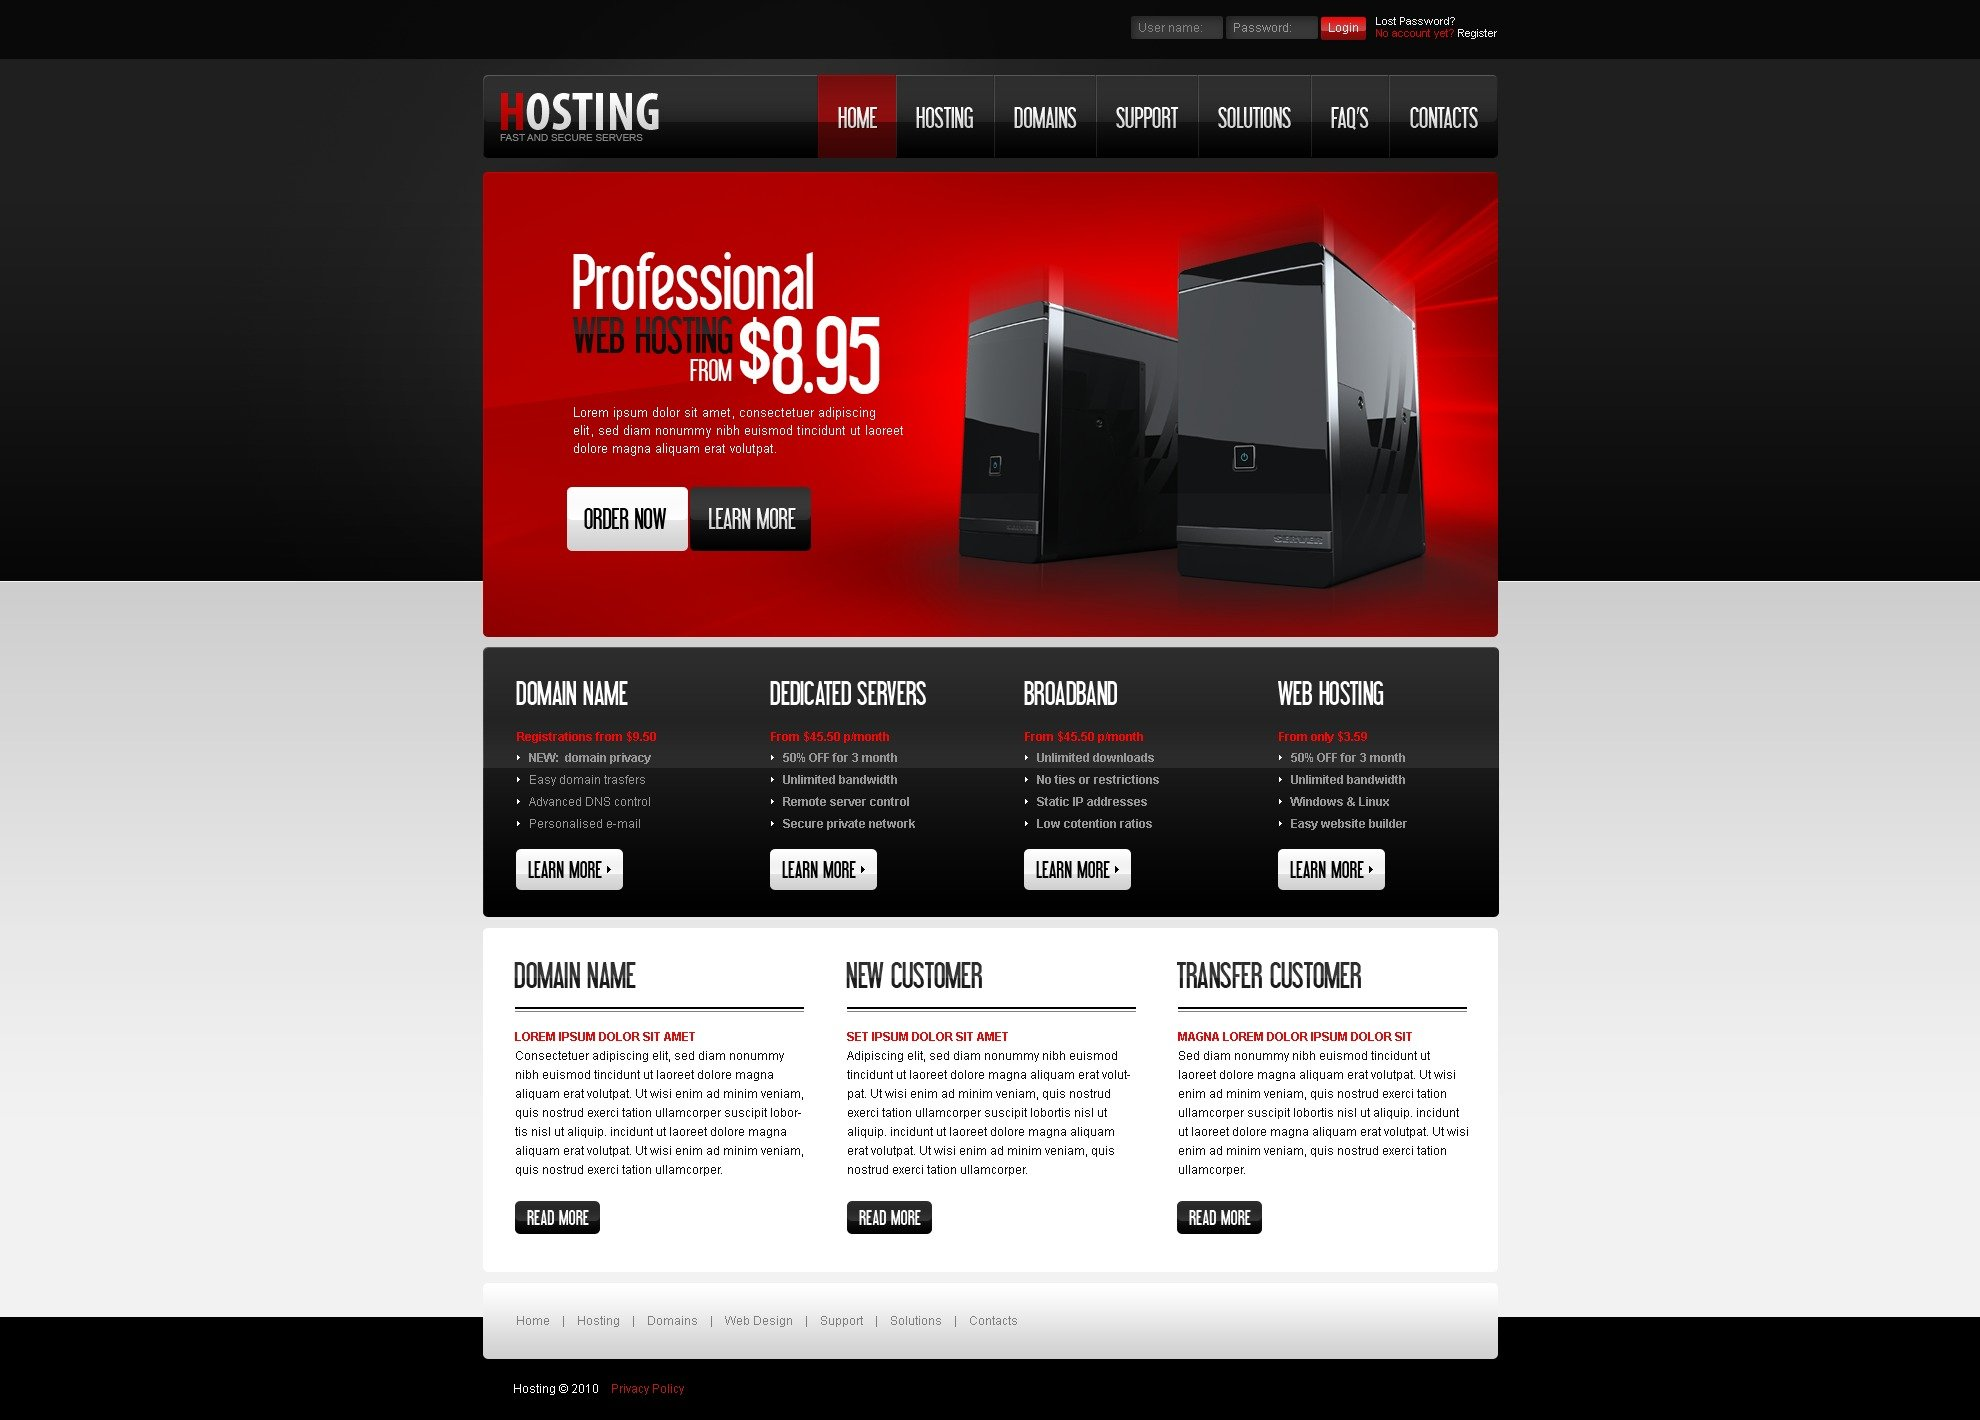 The Hosting Company Solution PSD Design 54096, one of the best PSD templates of its kind (hosting, most popular, wide), also known as hosting company solution PSD template, domain PSD template, services PSD template, beginner PSD template, plan PSD template, standard PSD template, advanced PSD template, dedicated PSD template, workteam PSD template, tools PSD template, special offer PSD template, server PSD template, monitoring PSD template, management PSD template, account PSD template, activation PSD template, client PSD template, technology solution PSD template, data center provider PSD template, traffic PSD template, internet PSD template, web IT processor PSD template, space and related with hosting company solution, domain, services, beginner, plan, standard, advanced, dedicated, workteam, tools, special offer, server, monitoring, management, account, activation, client, technology solution, data center provider, traffic, internet, web IT processor, space, etc.